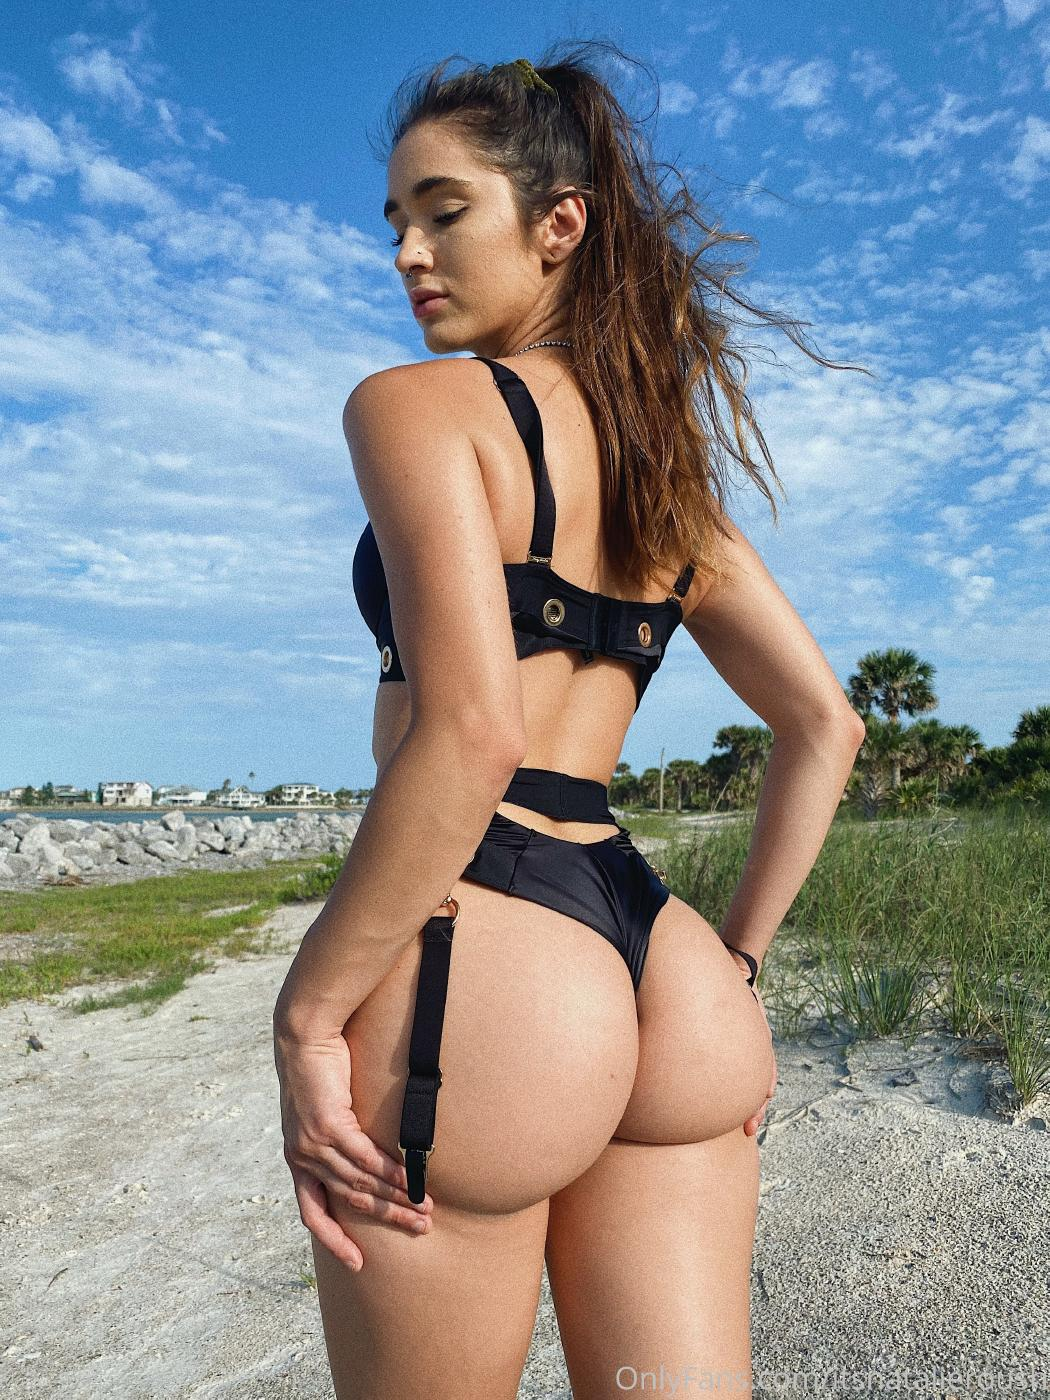 Natalie Roush Onlyfans Picture Set Leaked 0022